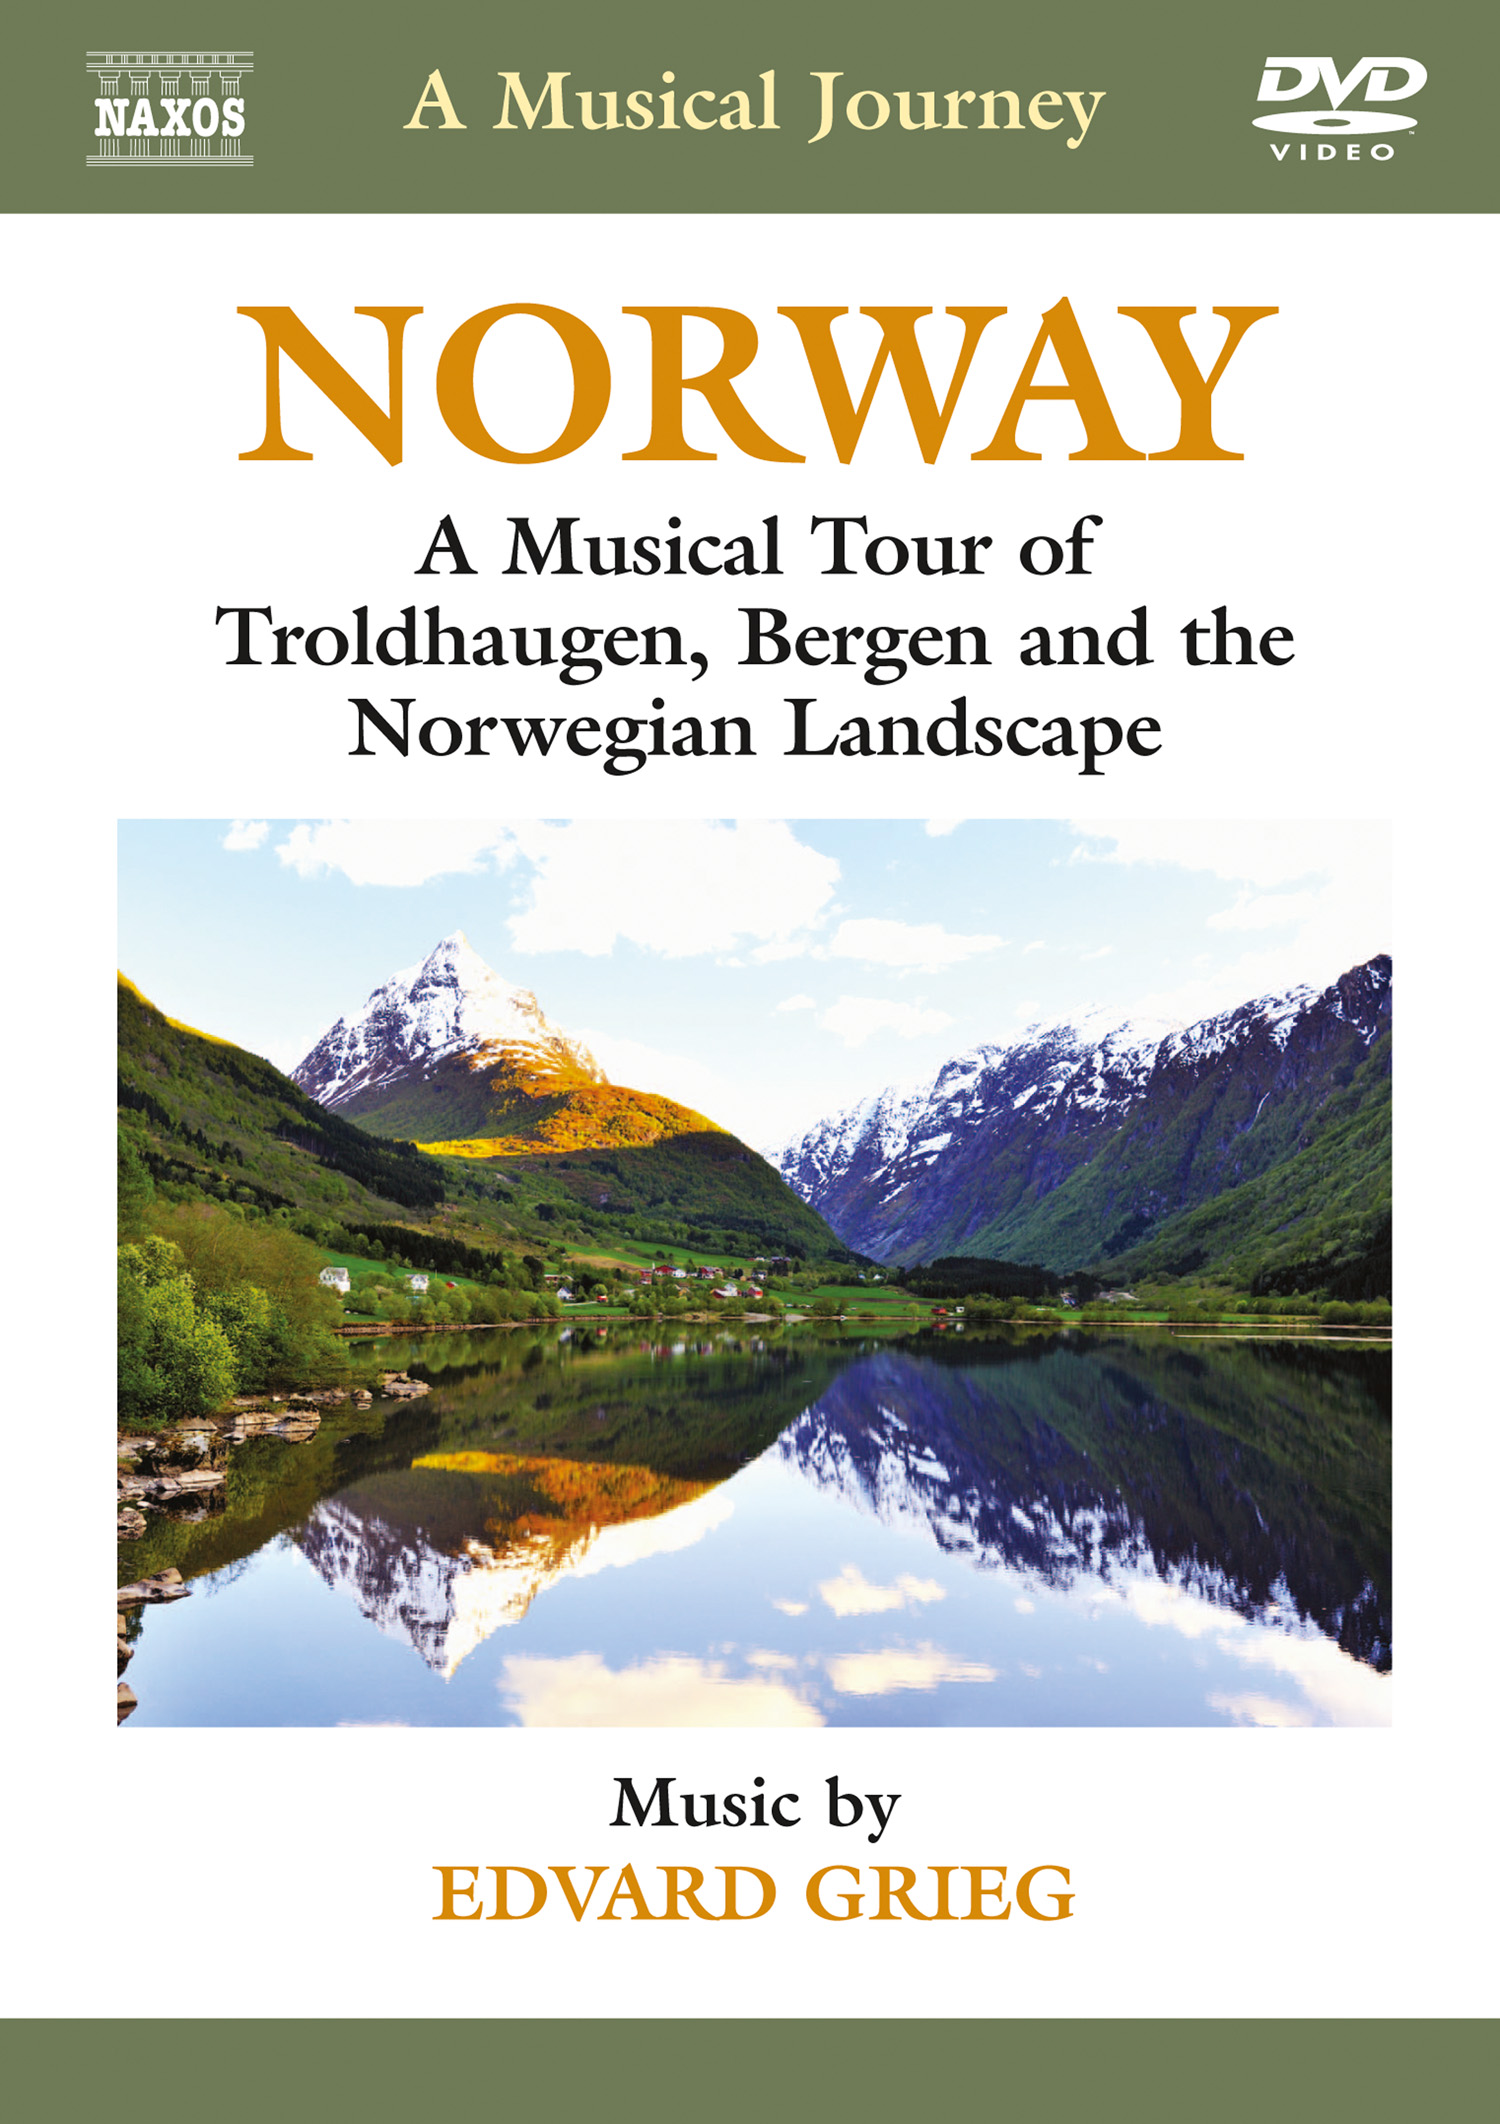 A Musical Journey: Norway - A Musical Tour of Troldhaugen, Bergen and the Norwegian Landscape